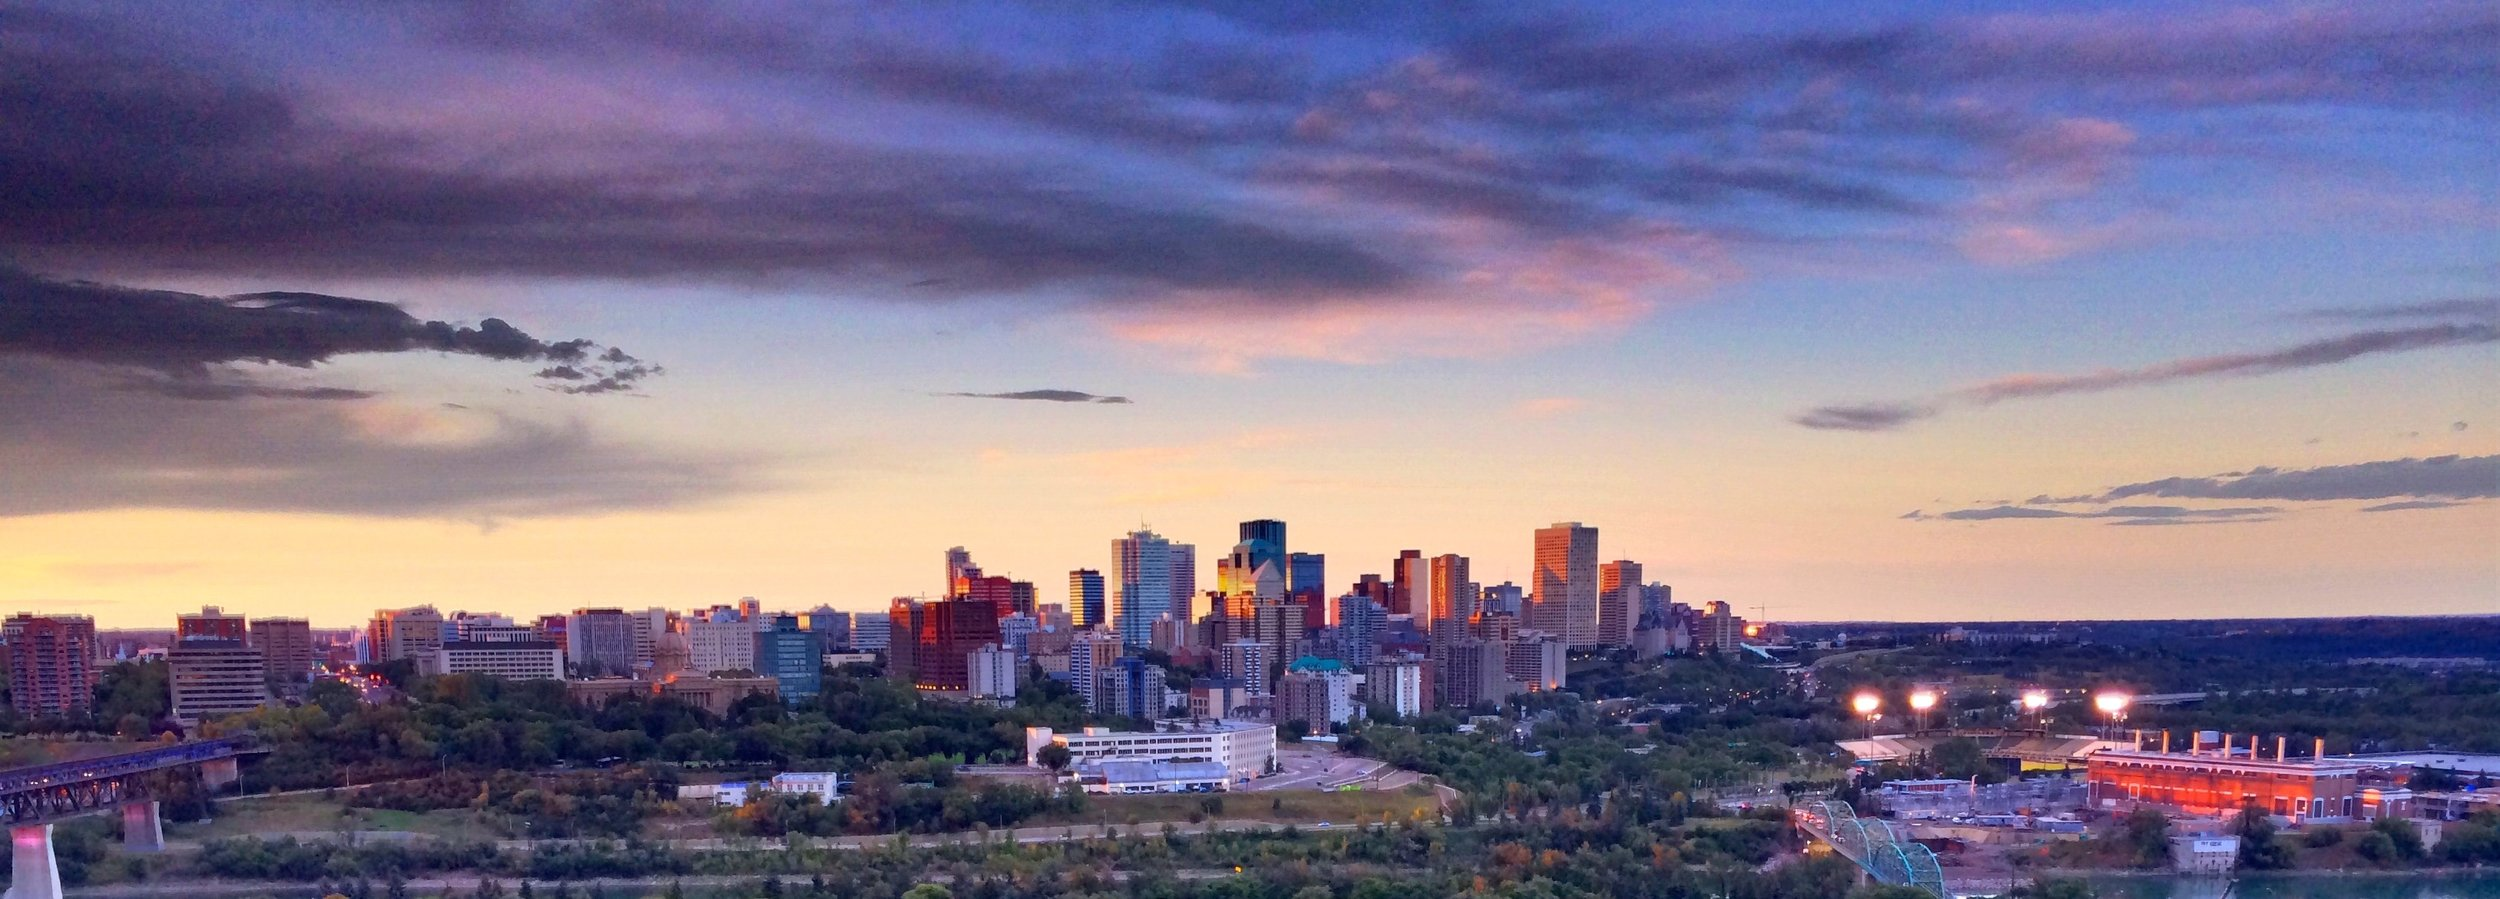 Edmonton, Canada - Skyline Sunset